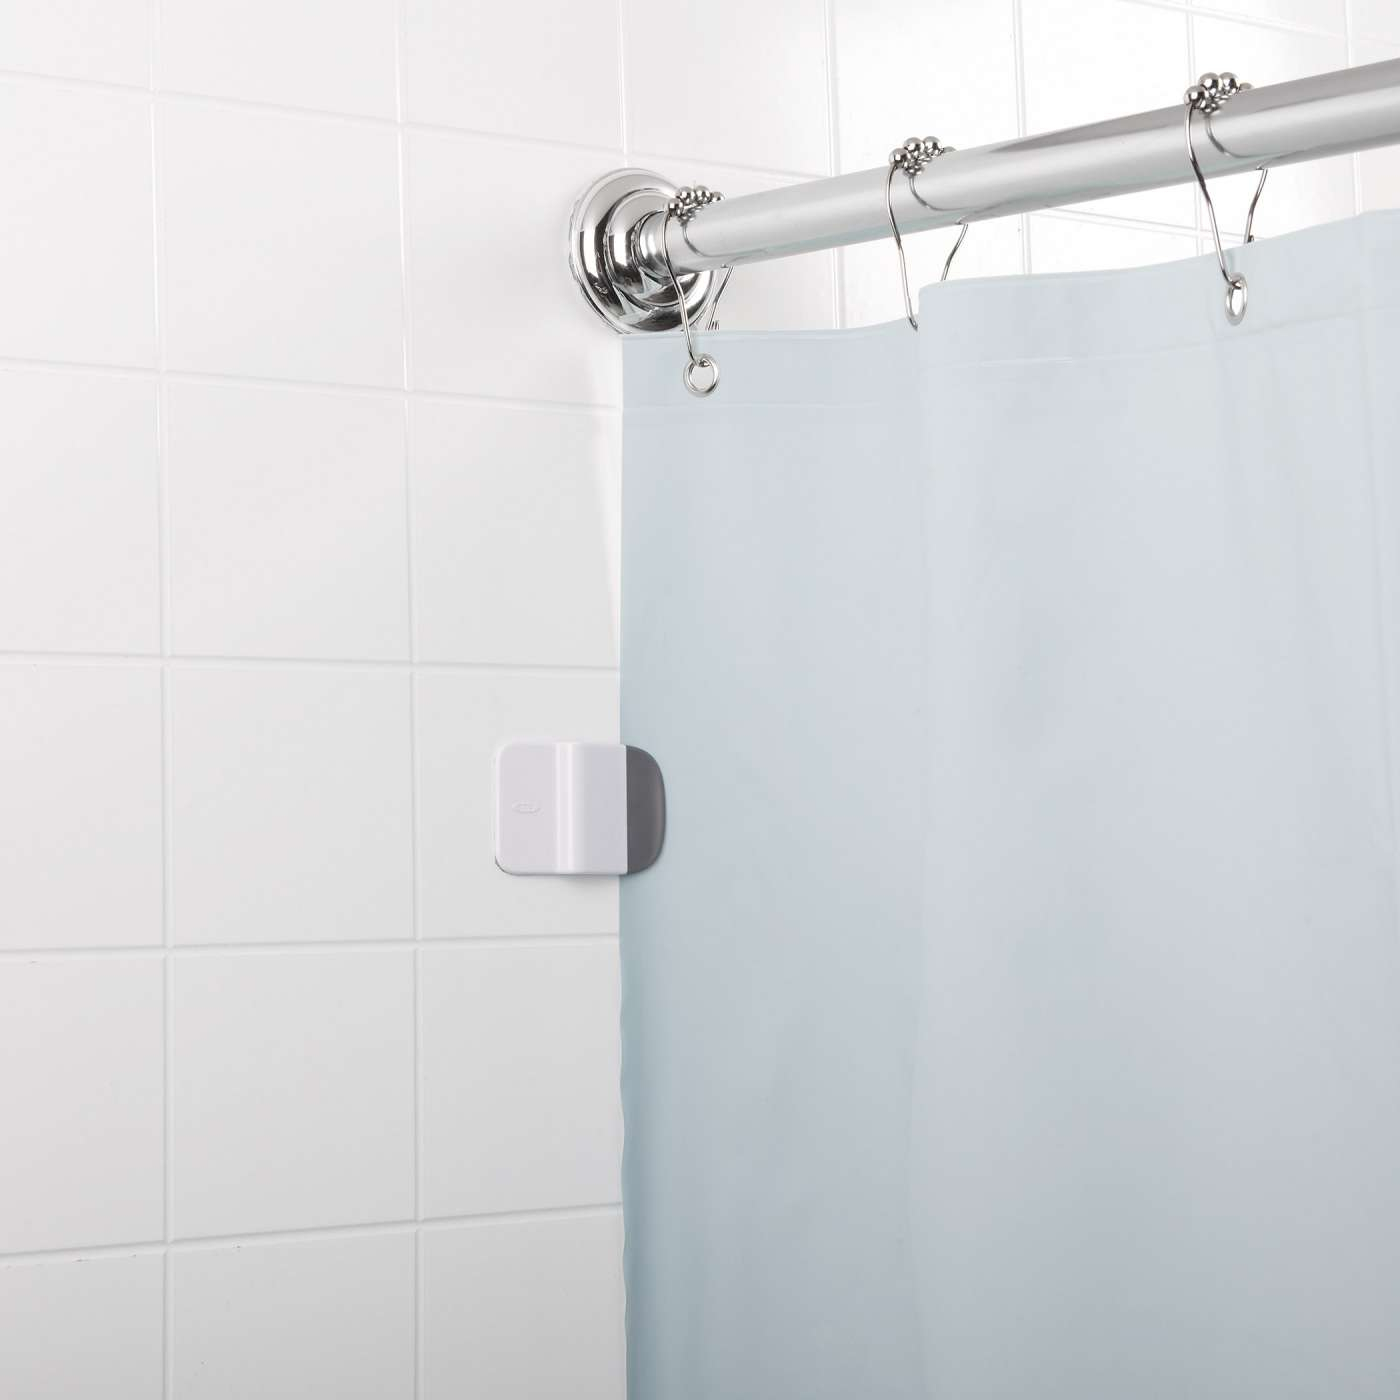 Suction Cup Shower Curtain Clips • Shower Curtains Ideas